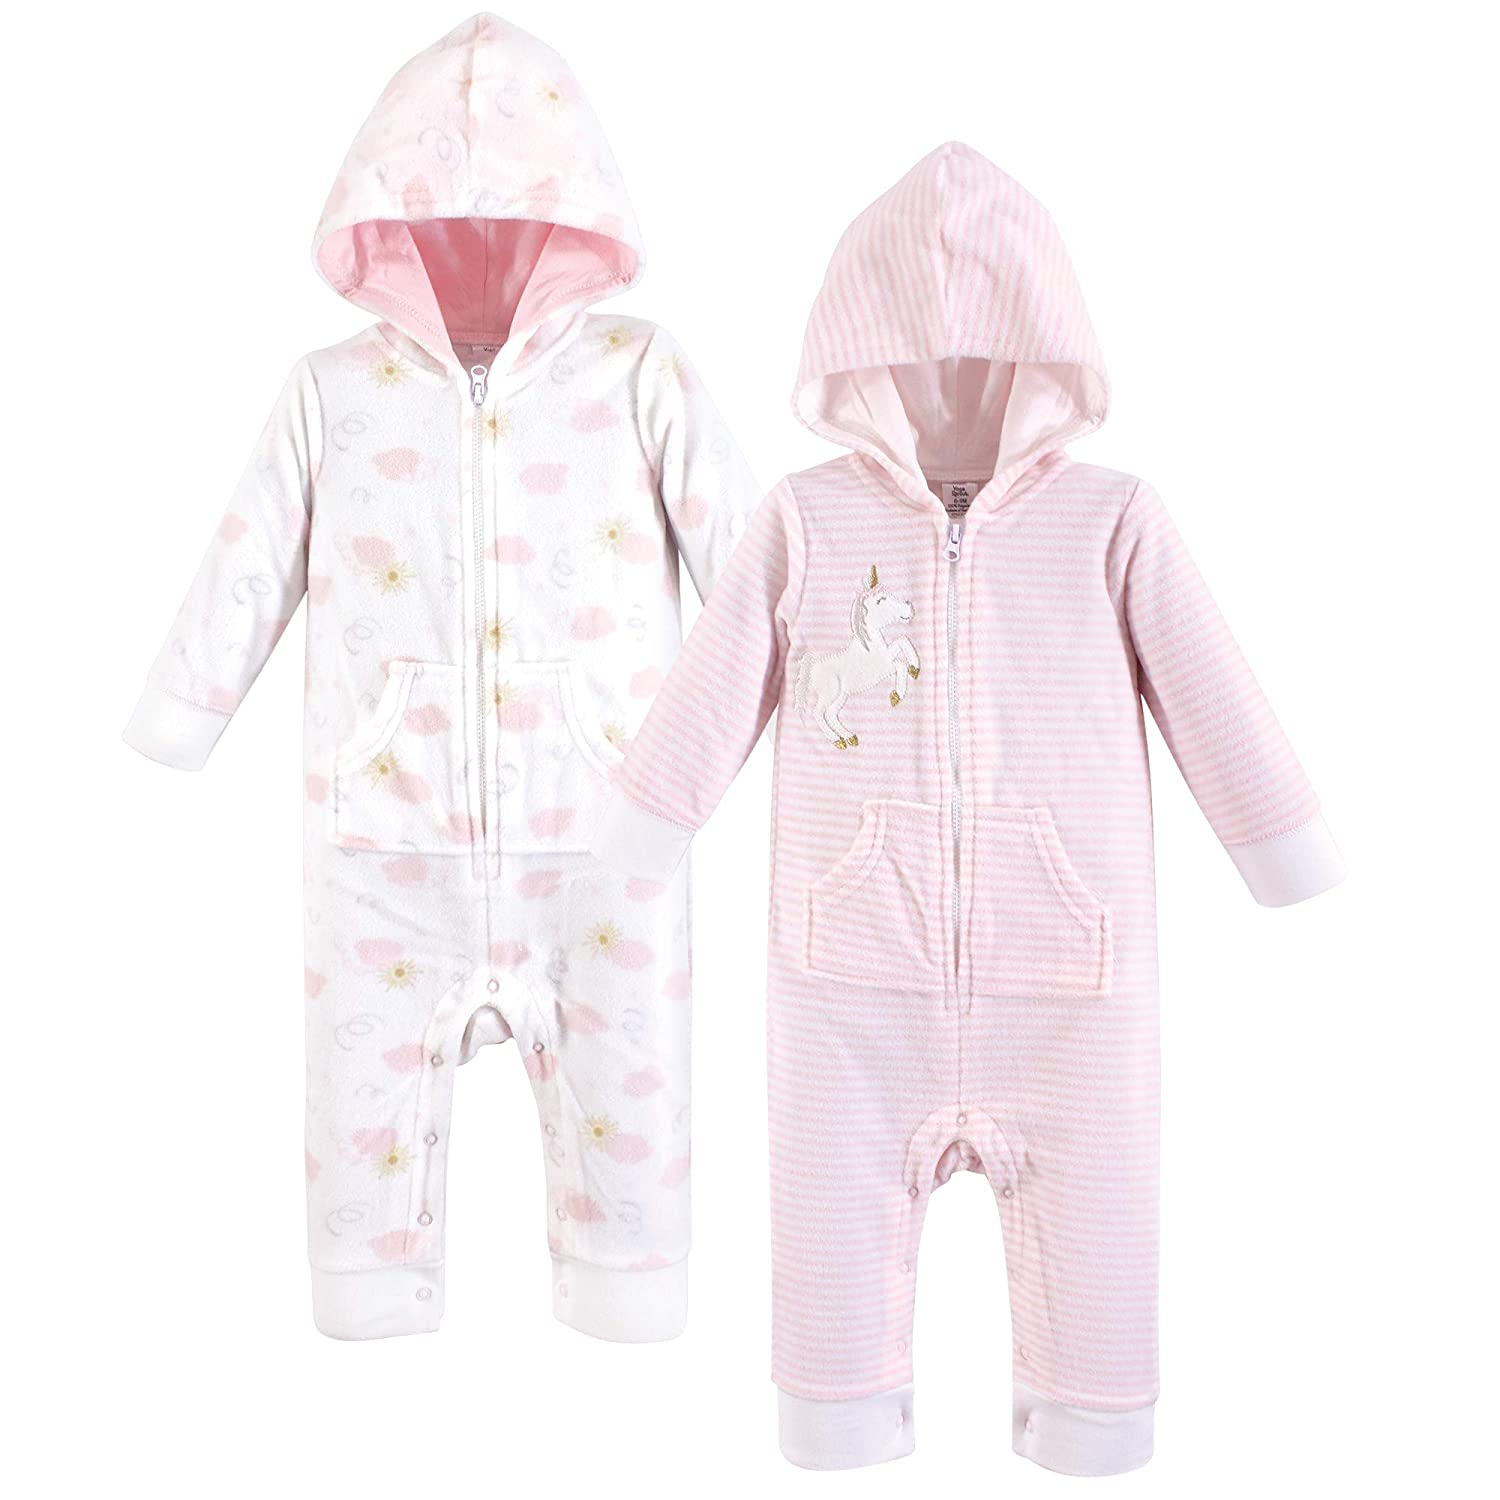 Yoga Sprout Baby Fleece Union Suit, 2 Pack Yoga Sprout Children' s Apparel 10192266